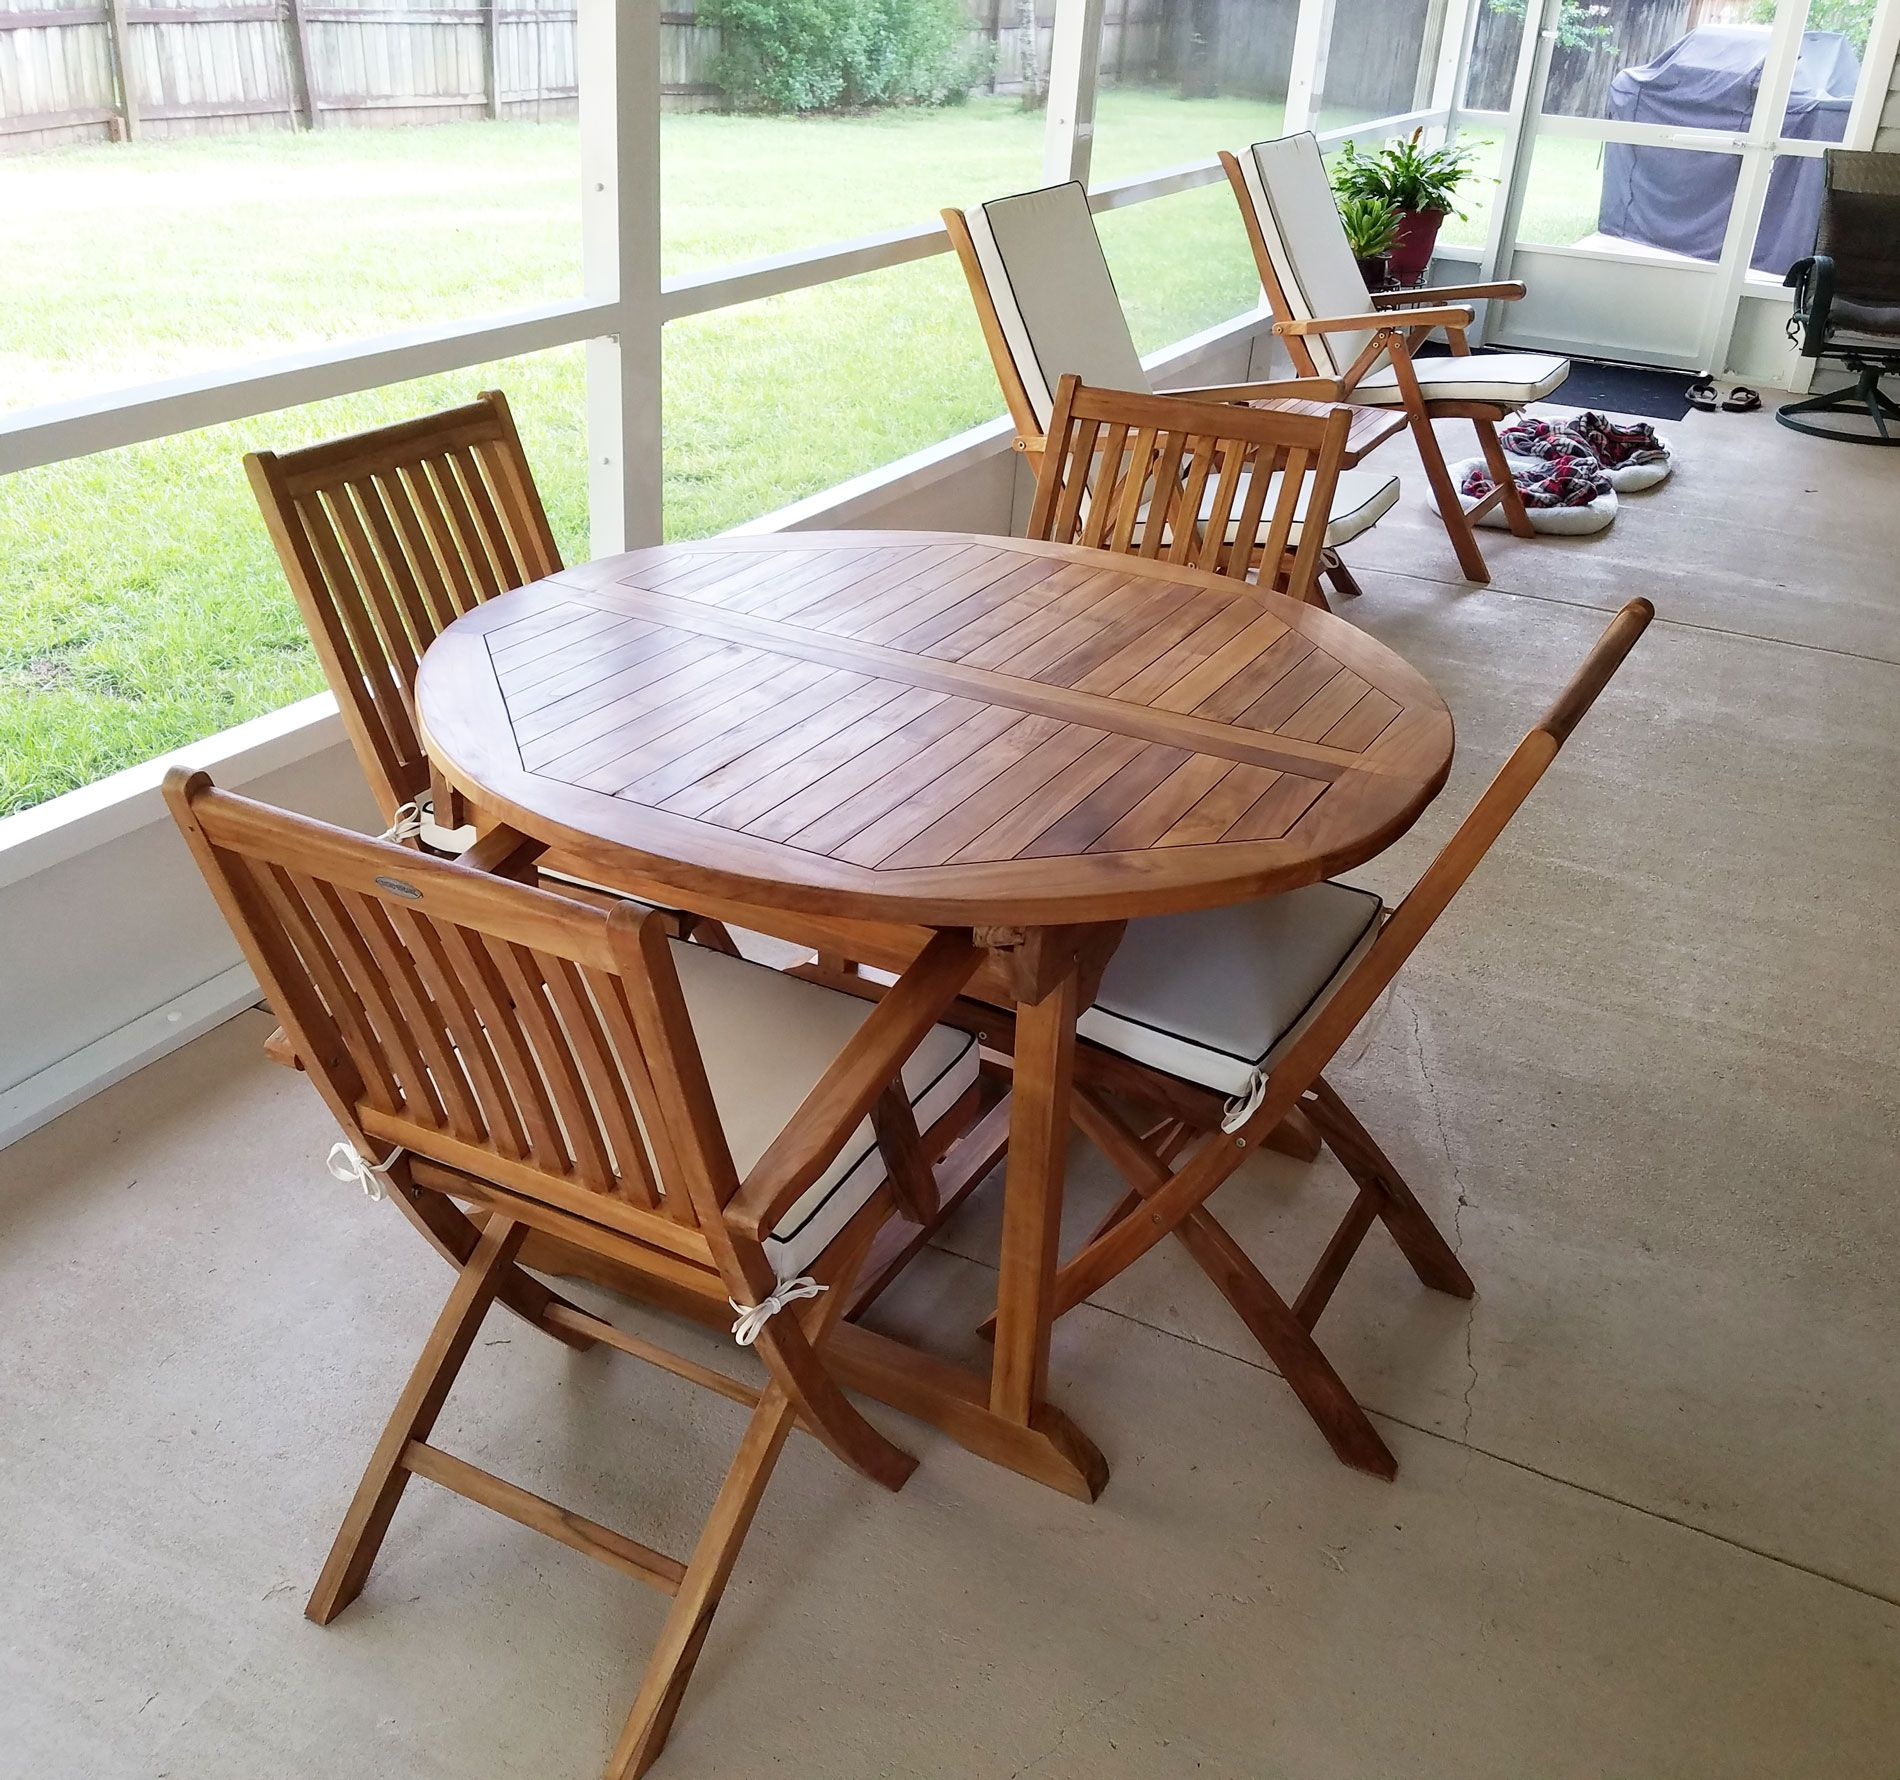 Barb And Al Shared This Great Photo Of Their Teak